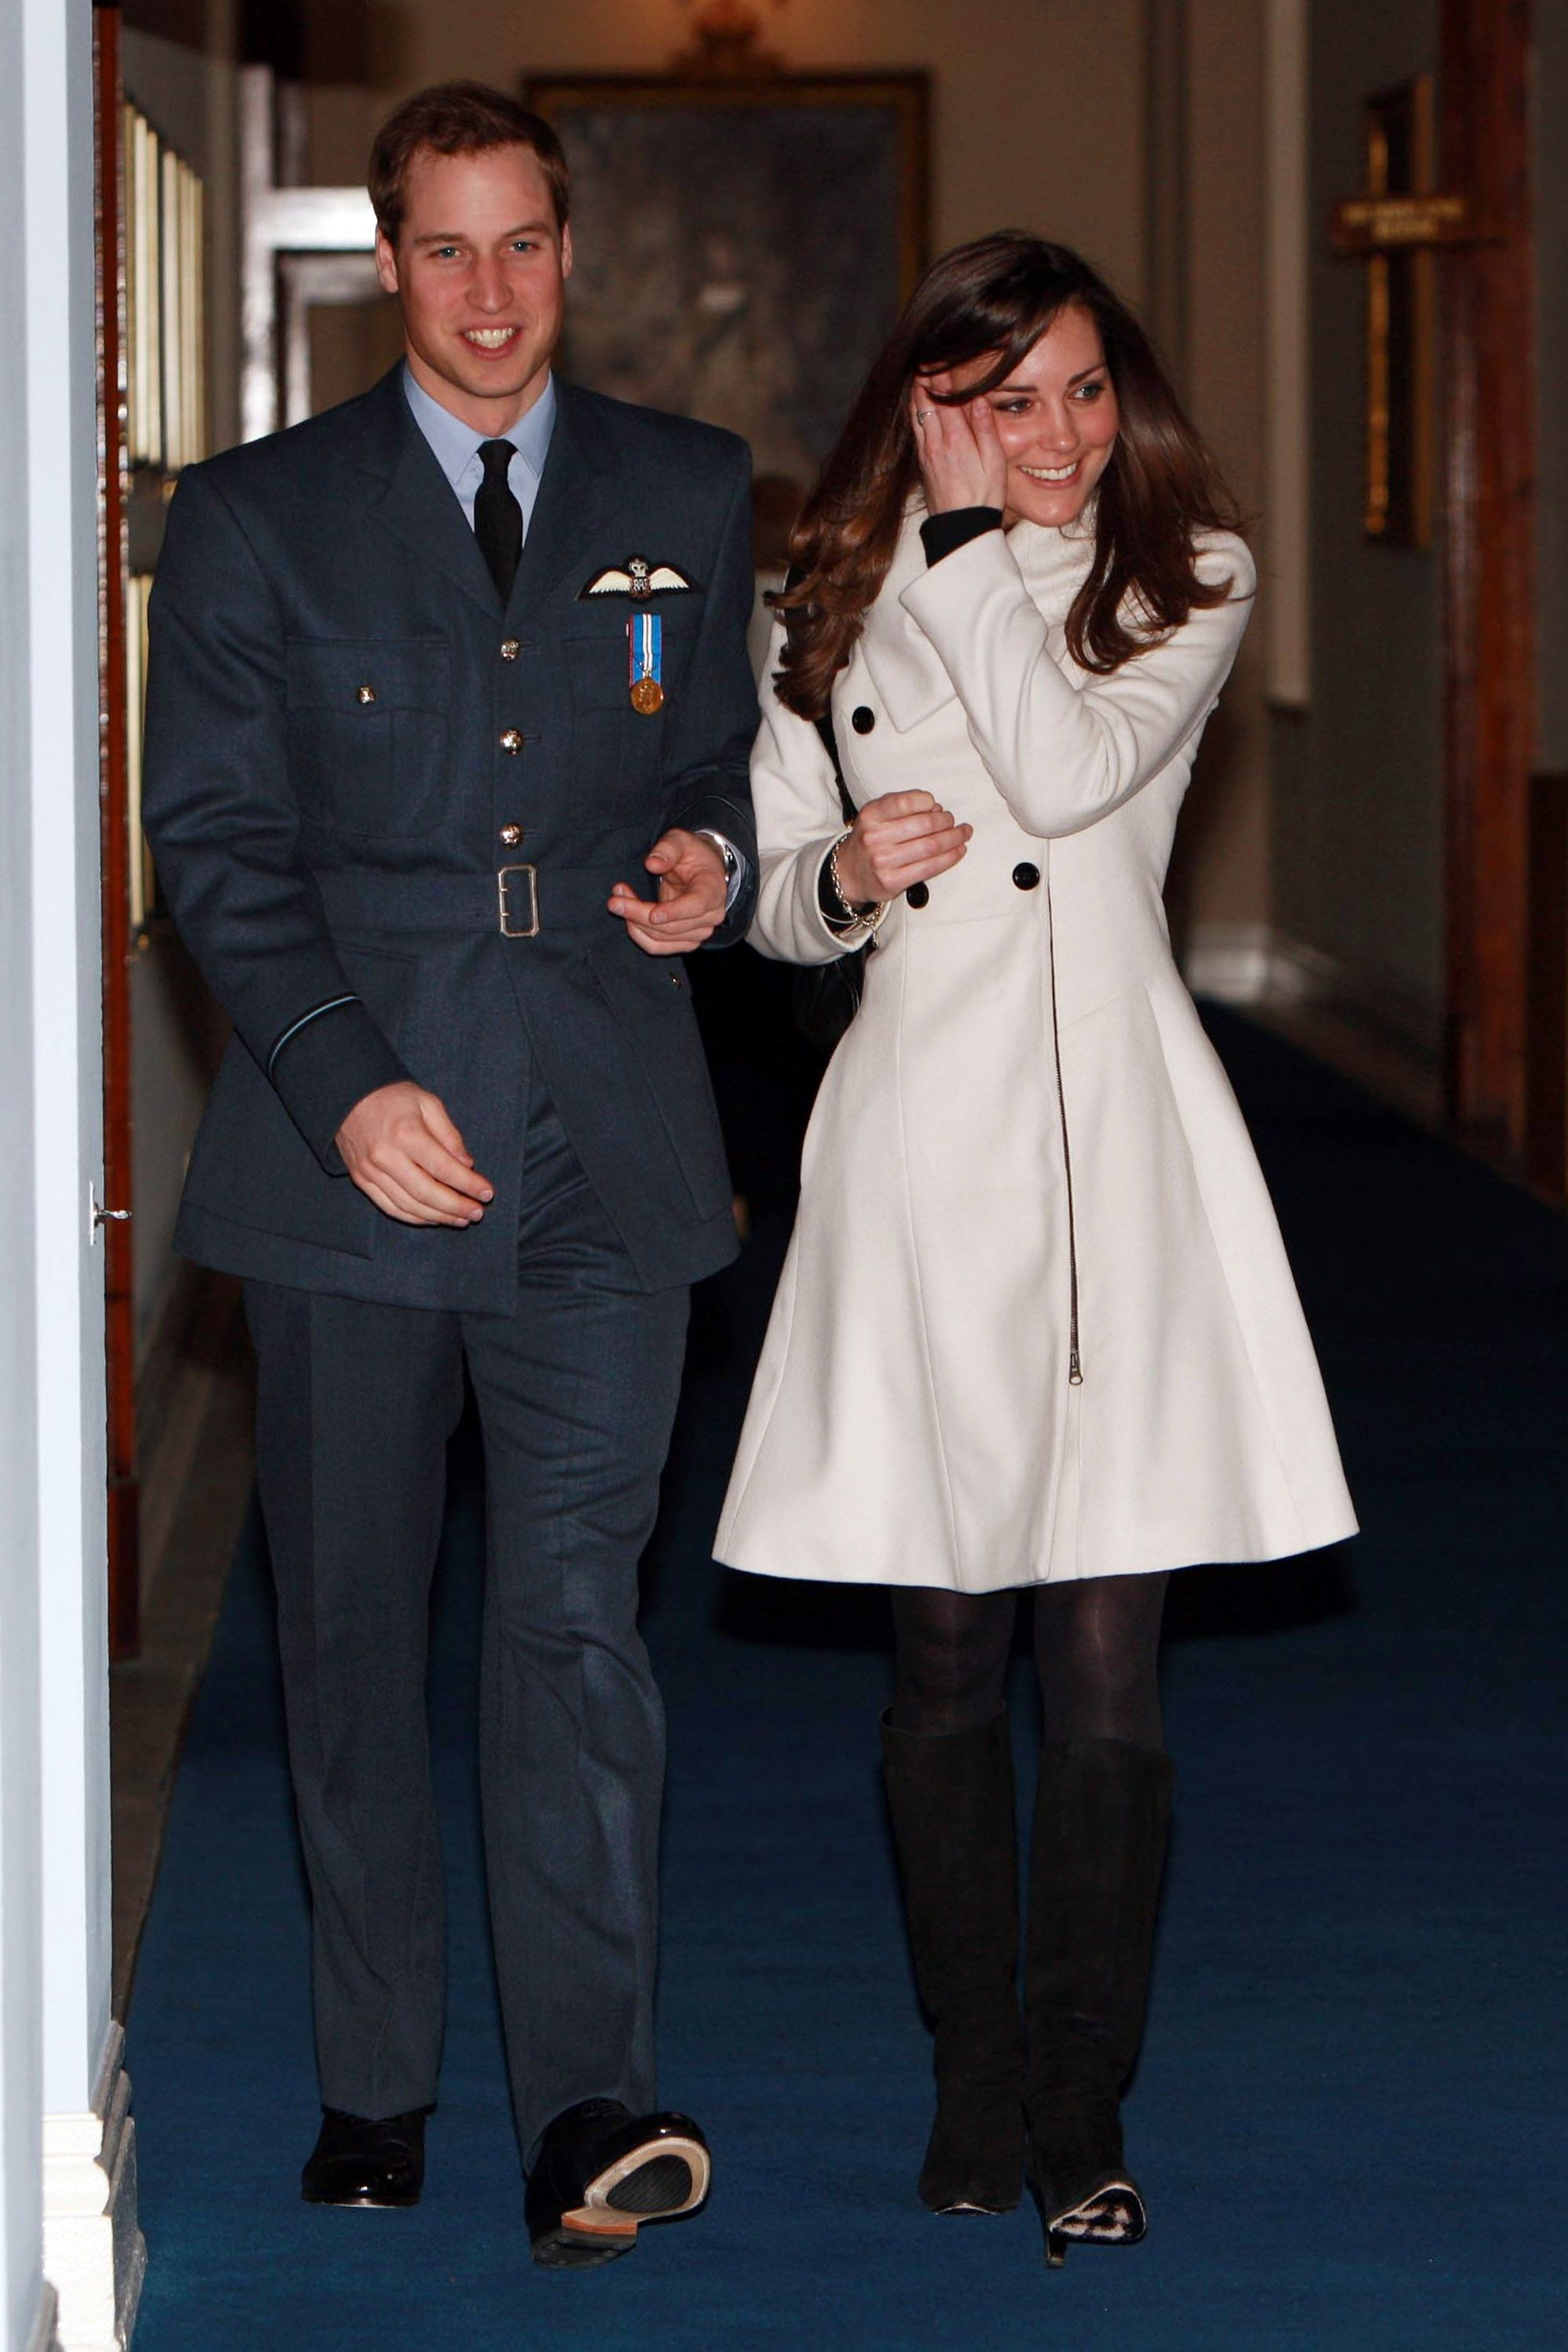 Prince William with his girlfriend Kate Middleton after his graduation ceremony at RAF Cranwell on April 11, 2008, in Cranwell, England | Photo: Pool/Anwar Hussein Collection/WireImage/Getty Images